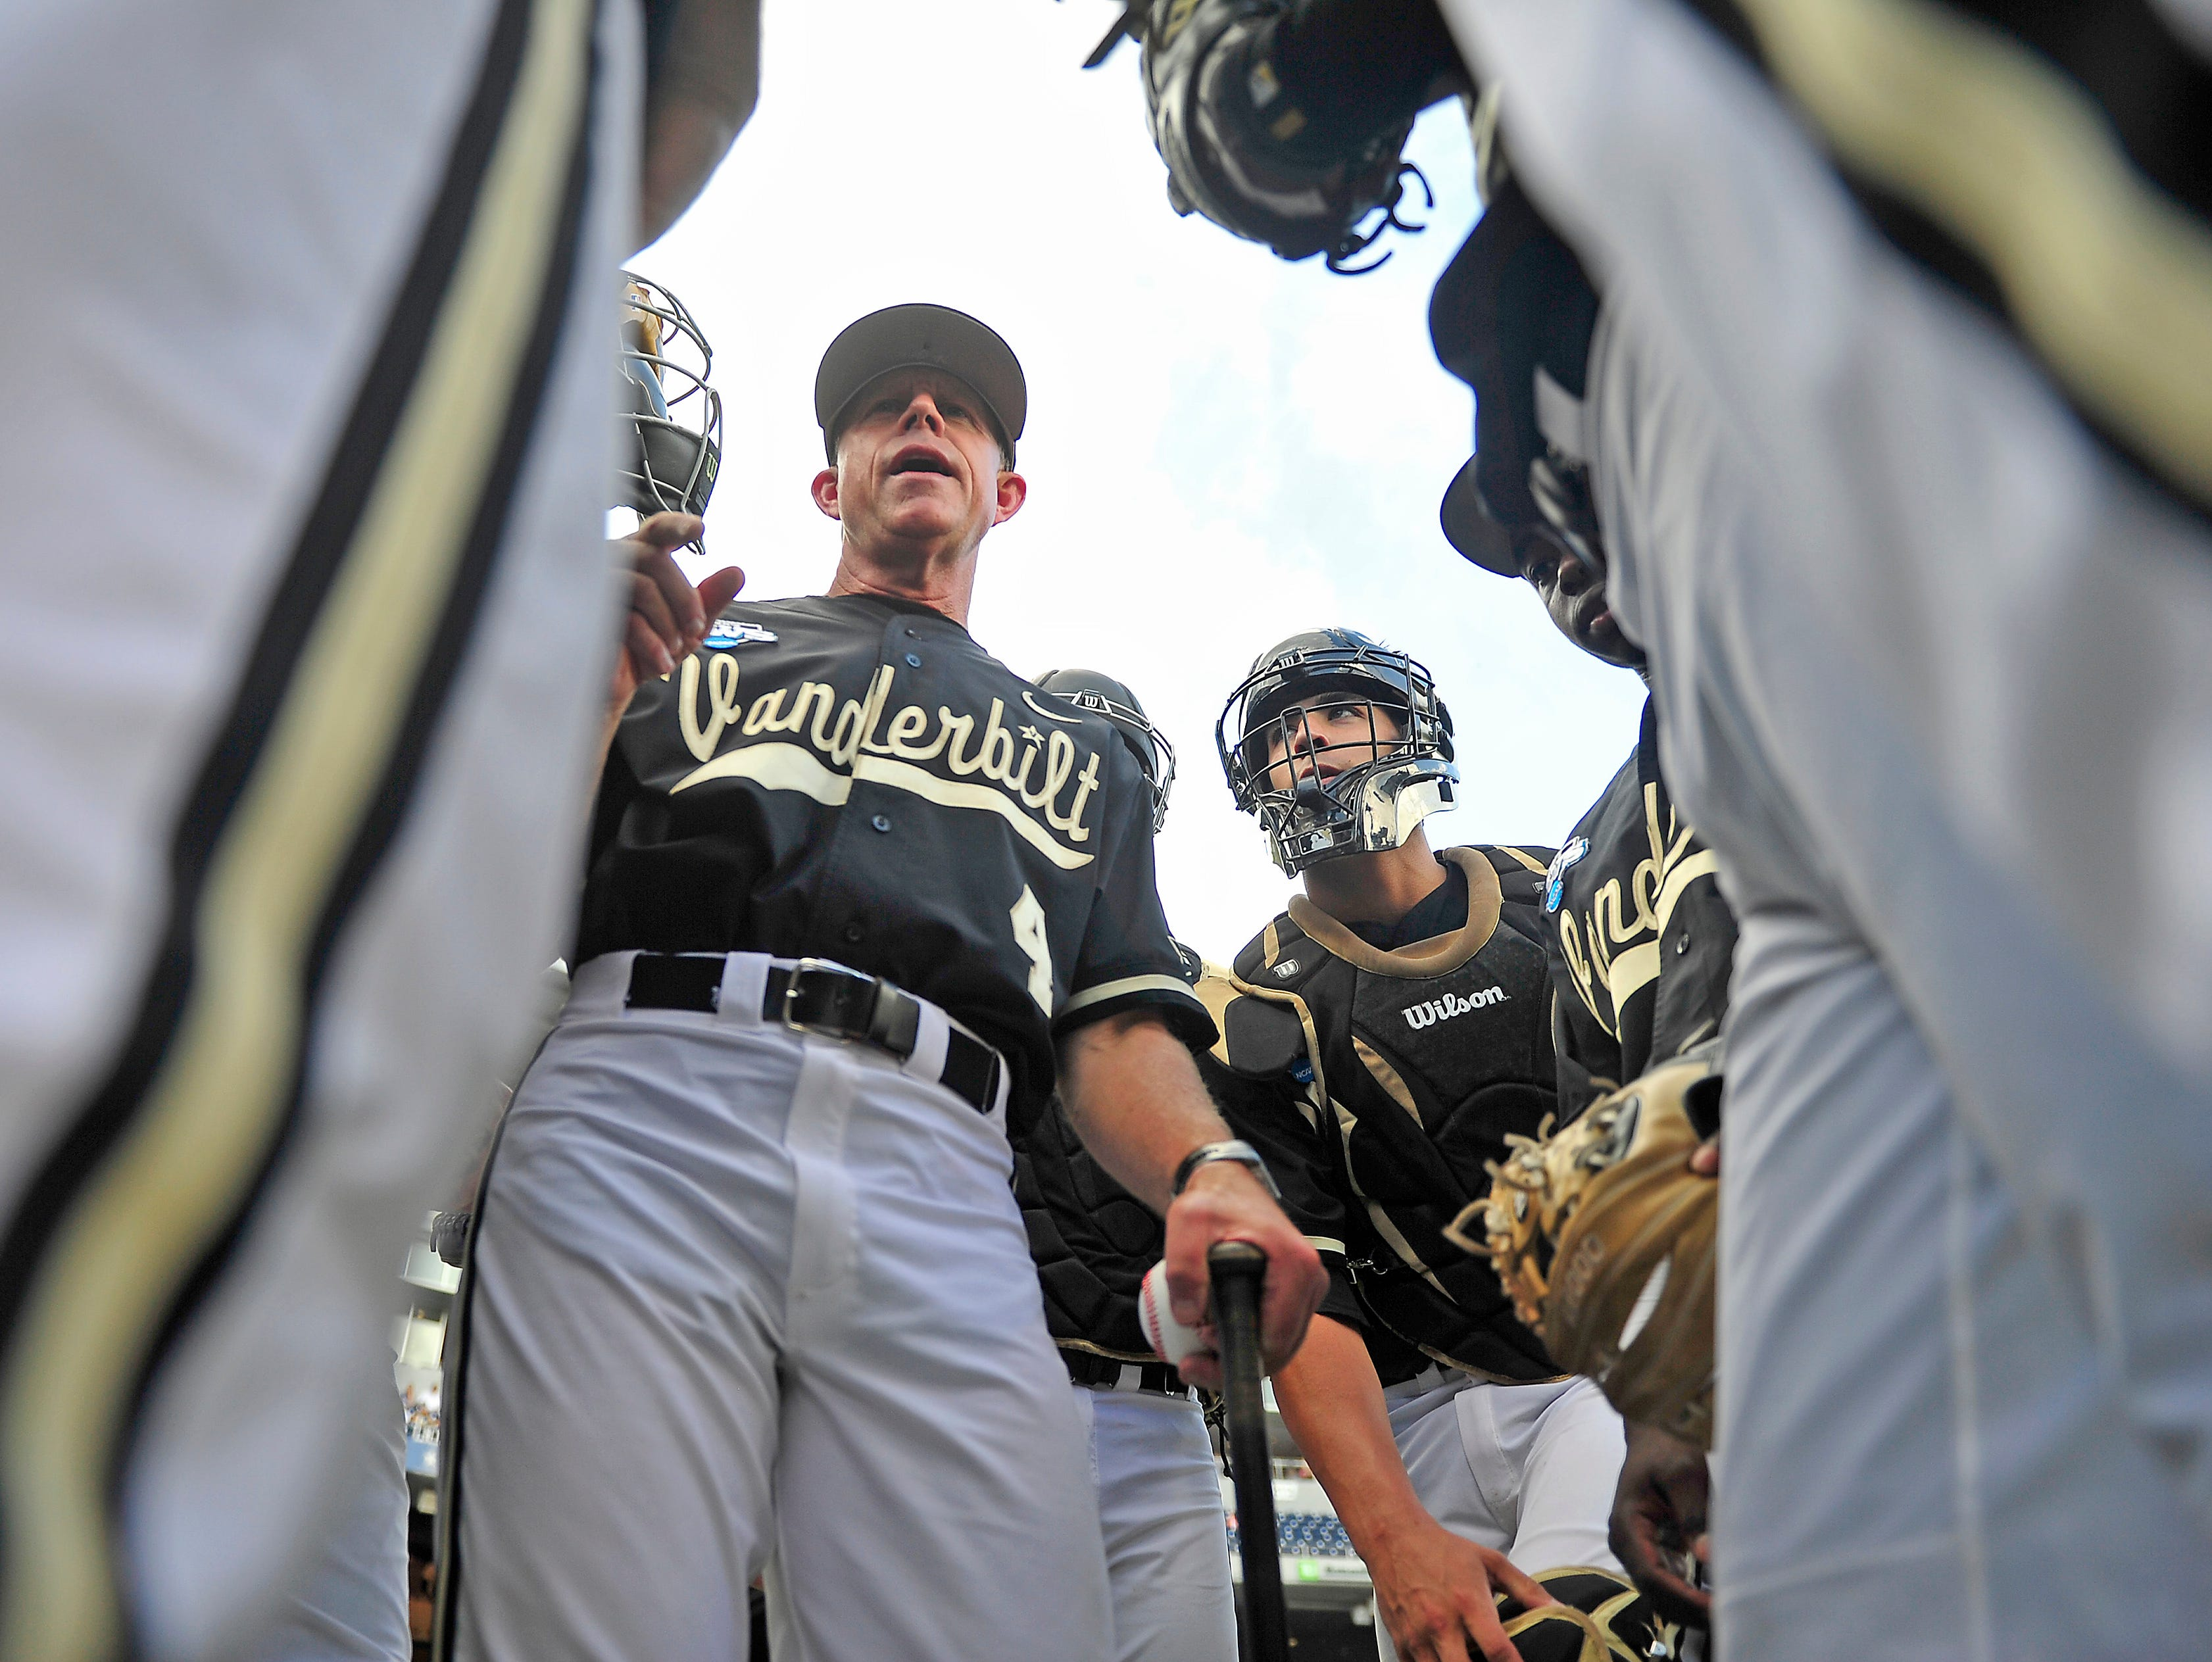 Vanderbilt Head Coach Tim Corbin talks with his players prior to the game 3 against Virginia at the College World Series at TD Ameritrade Park in Omaha, Neb., Wednesday, June 25, 2014.